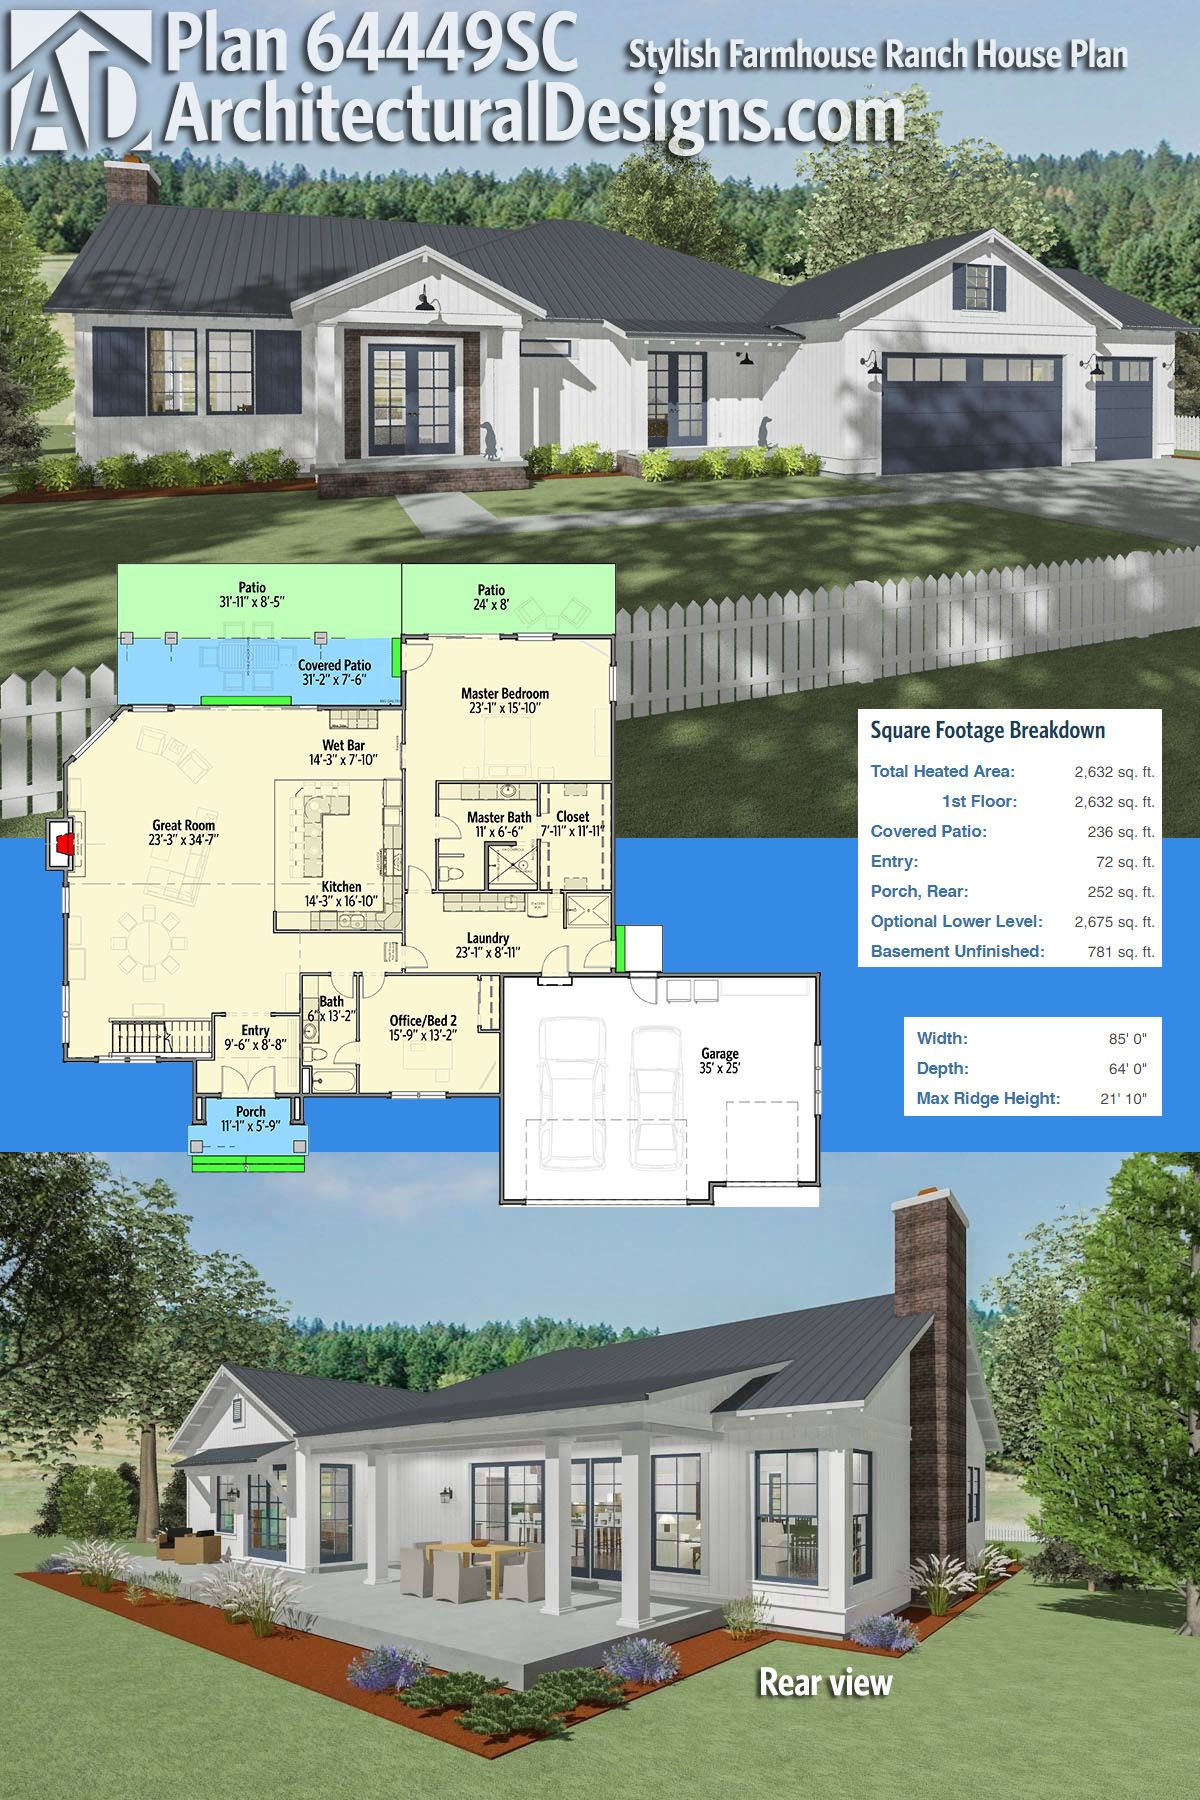 Architectural Designs House Plan 64449sc Is A Modern Farmhouse Ranch With 2 Beds And Expansion In An Optional Fini Ranch House Plan Farmhouse Plans House Plans